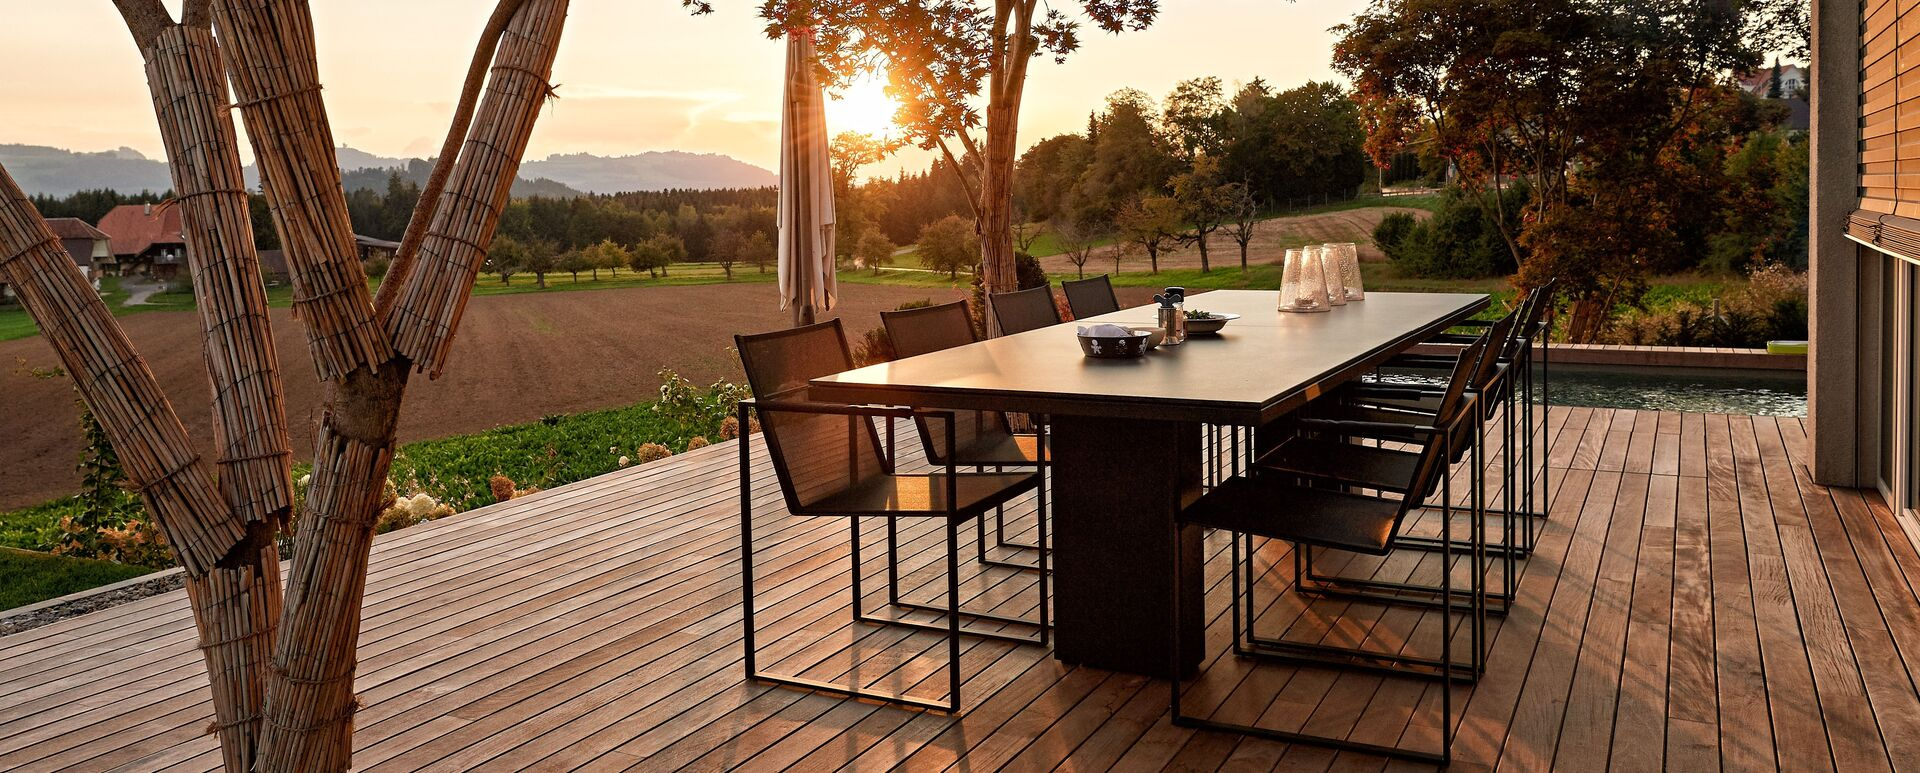 Doble 300 black and Butaque chair black - photo credit: GartenKultur AG